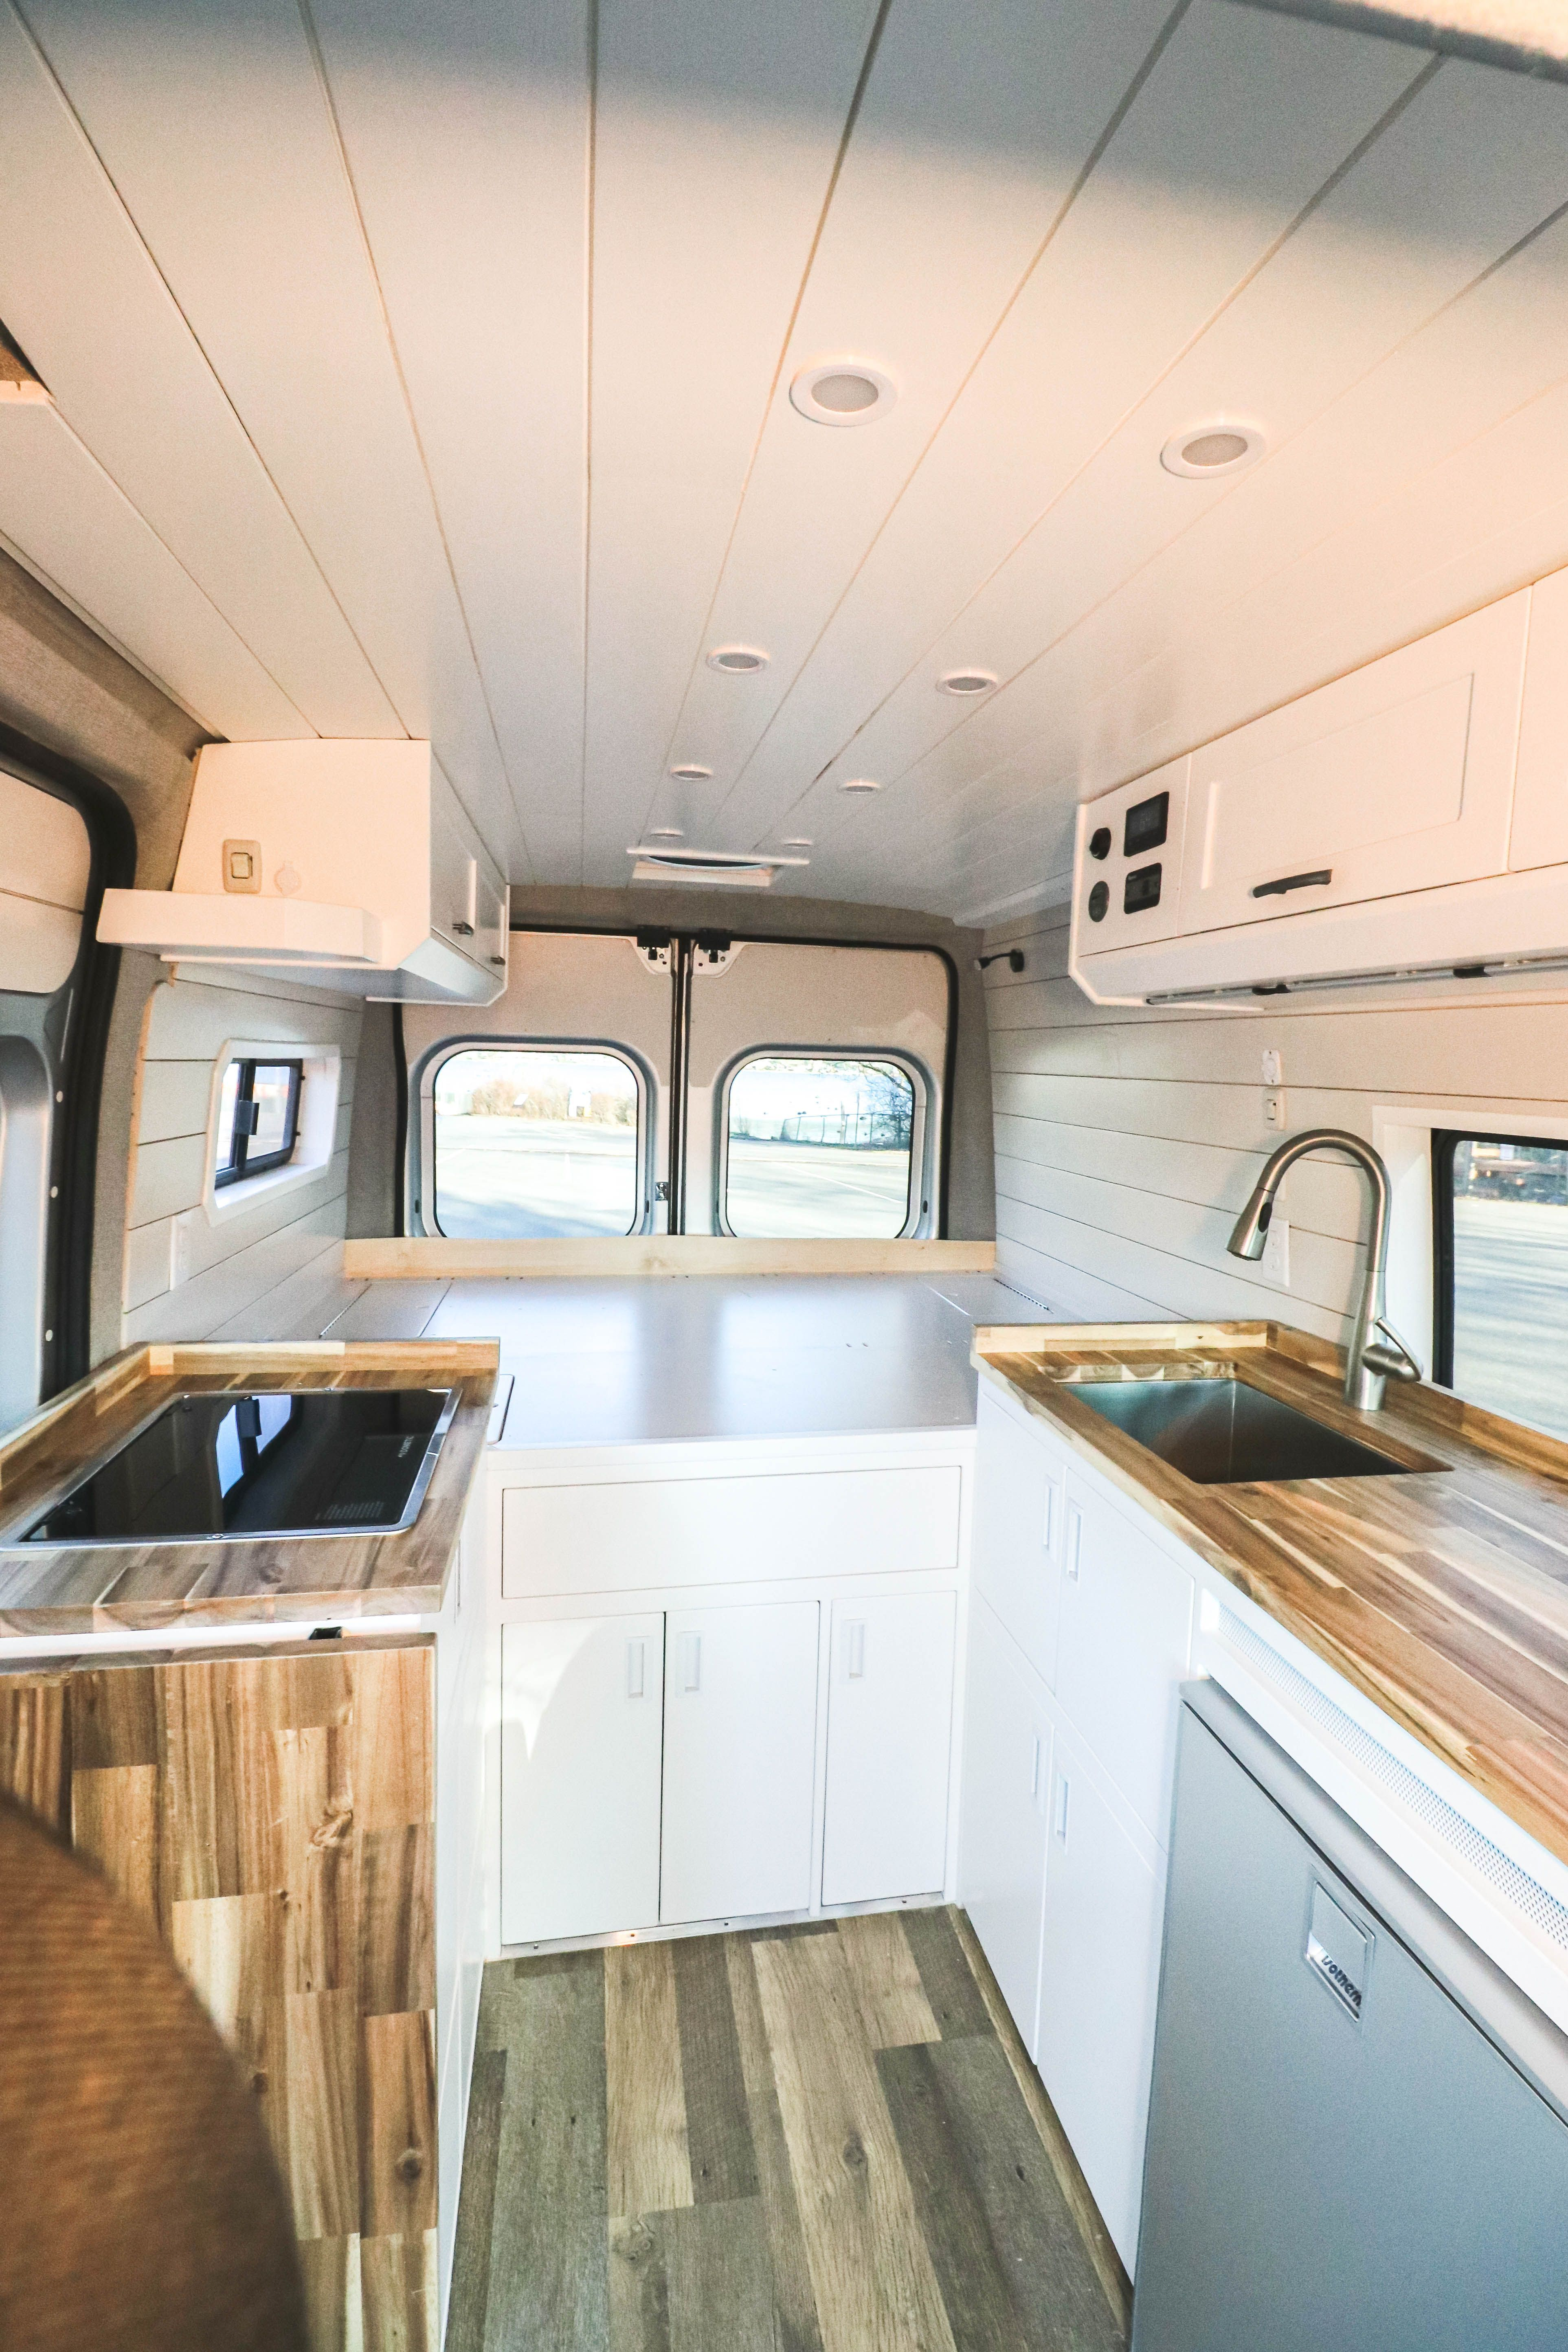 What do you think of this bright and airy Promaster conversion by Freedom Vans? #van #vanlife #promaster #vanconversion #vanideas #tinyhome #tinyhouse #tinyliving #convertedvan #rampromaster #convertedvan #vanconversioncompany #homeonwheels #bellingham #washington